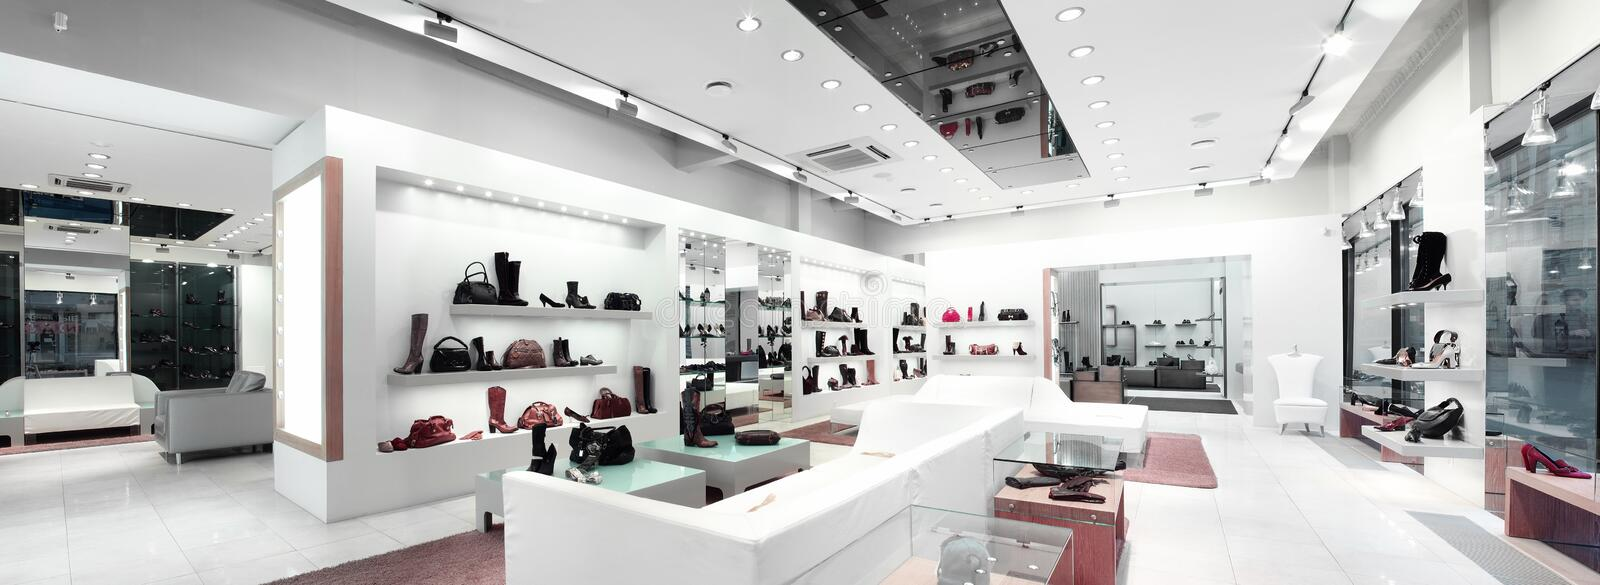 interior of a shop stock images